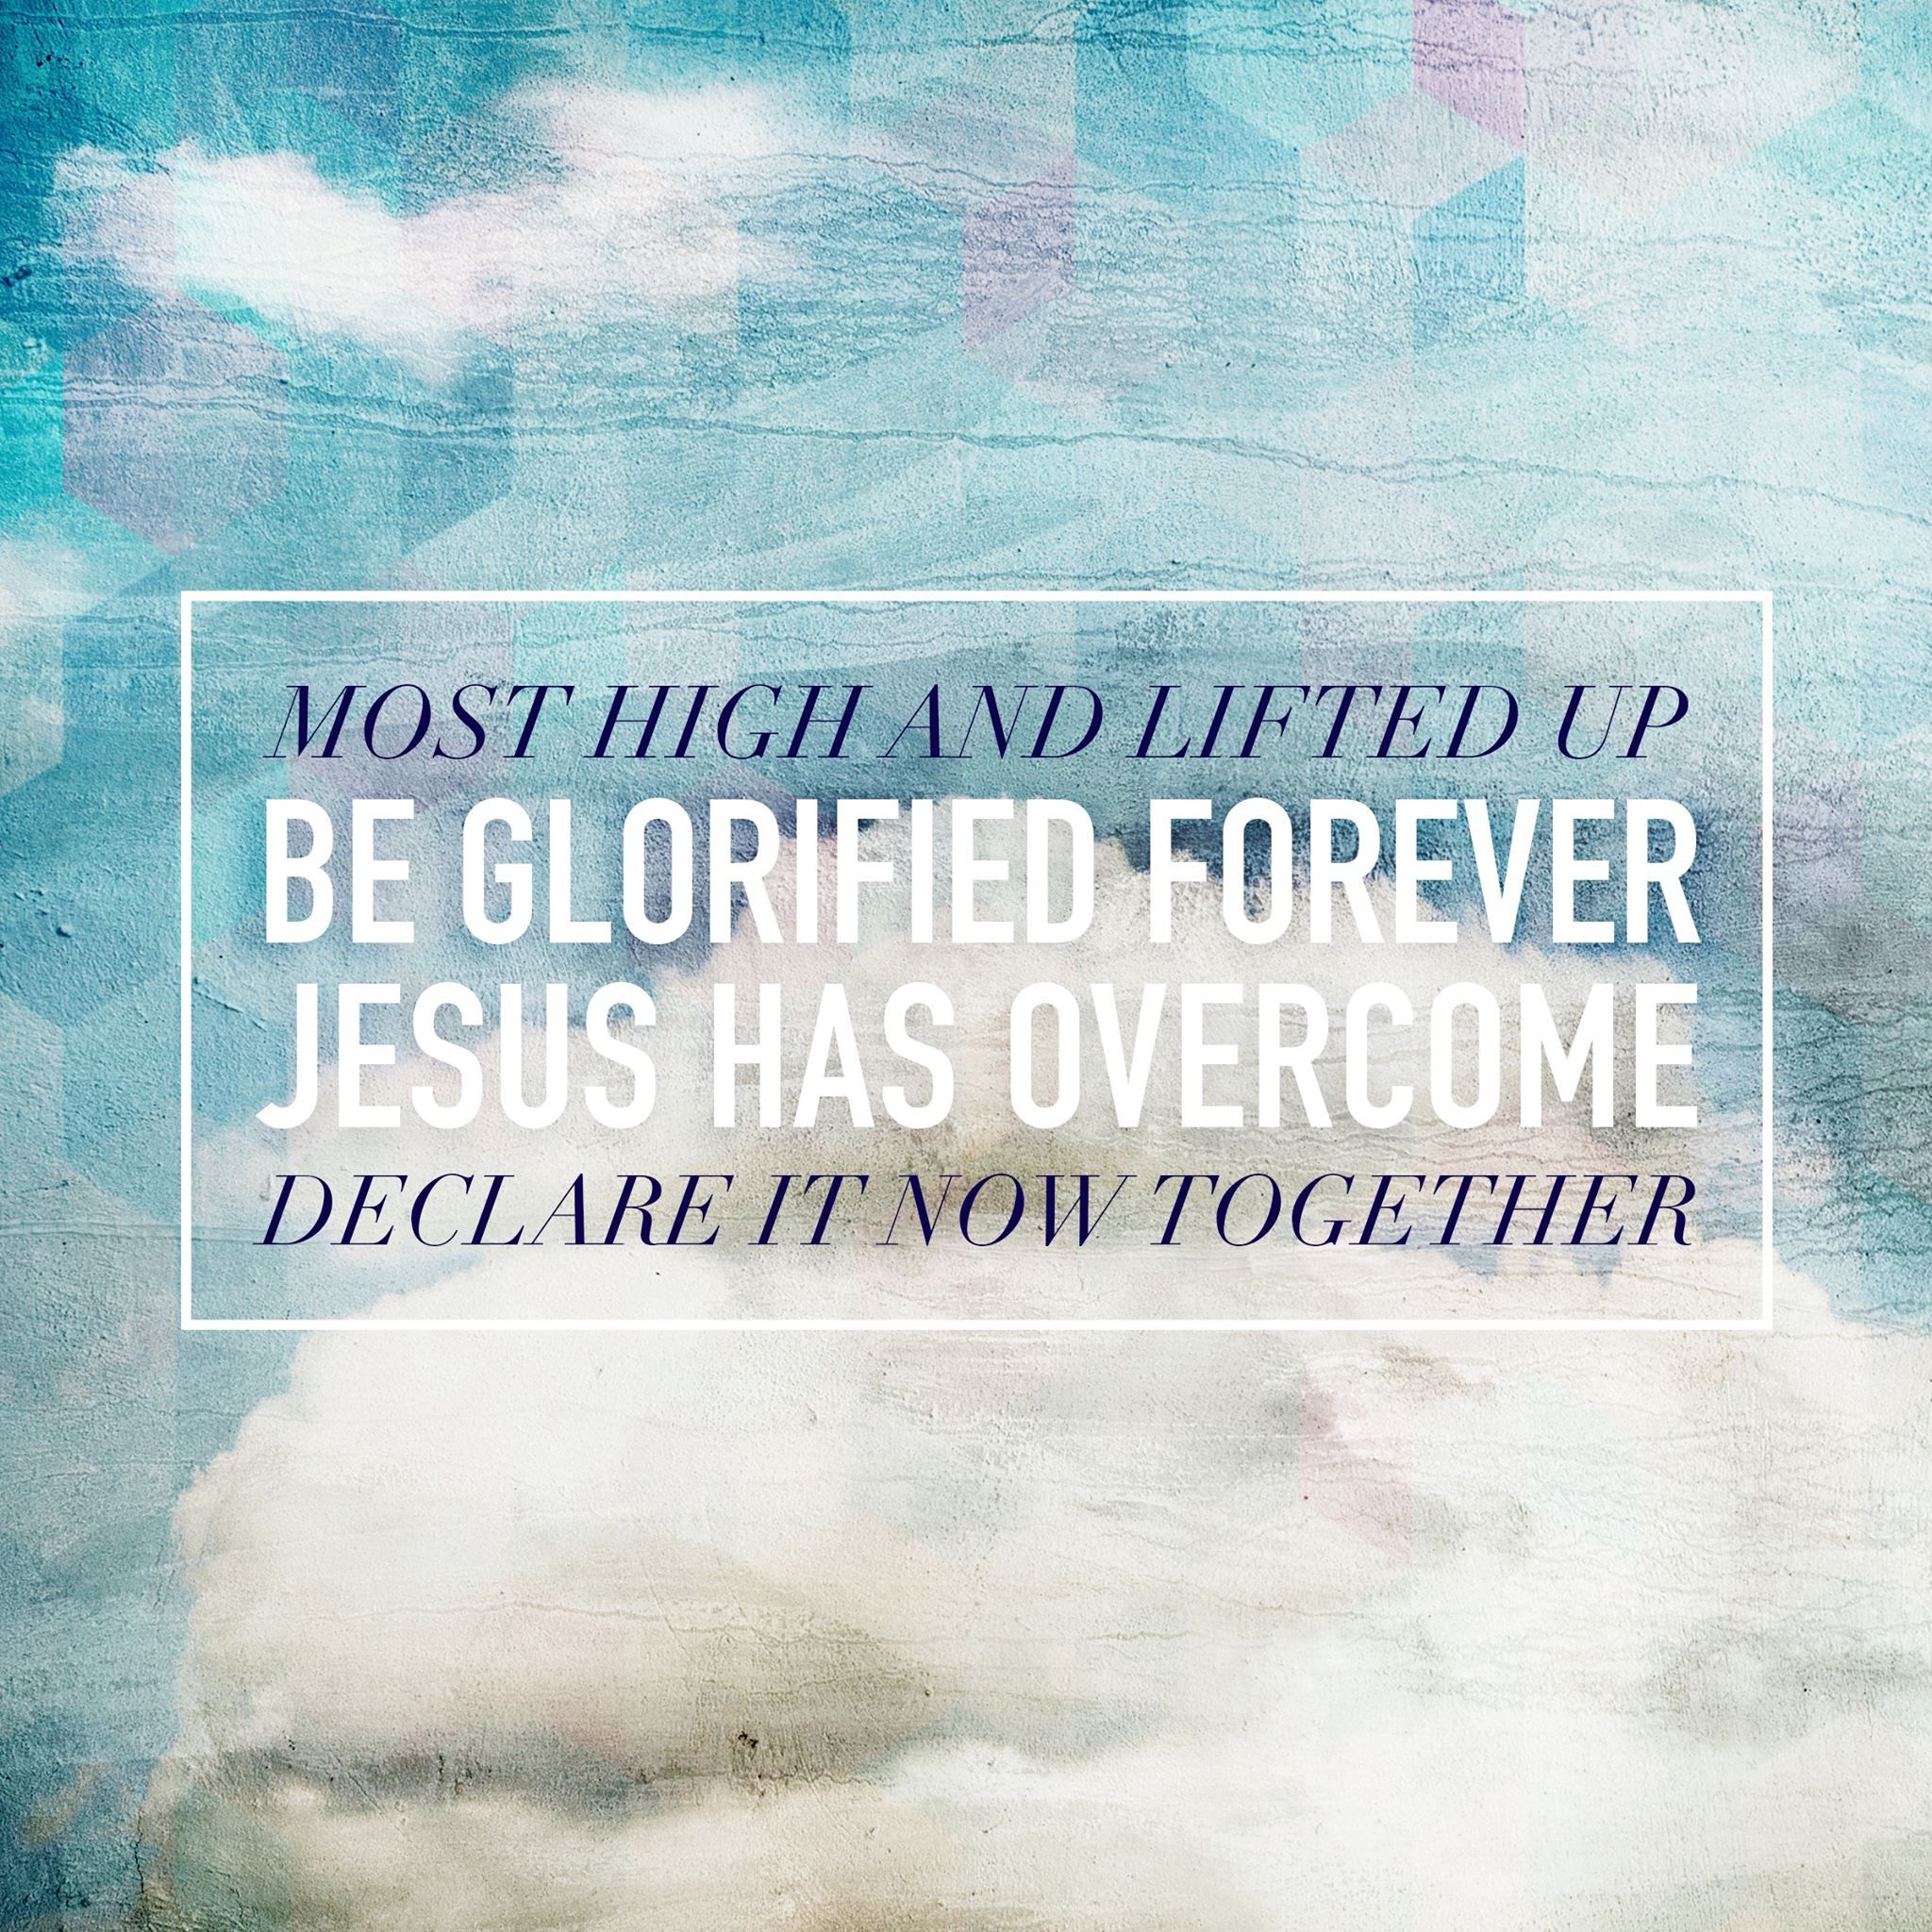 Most high and lifted up be glorified forever jesus has overcome most high and lifted up be glorified forever jesus has overcome declare it now together hexwebz Images